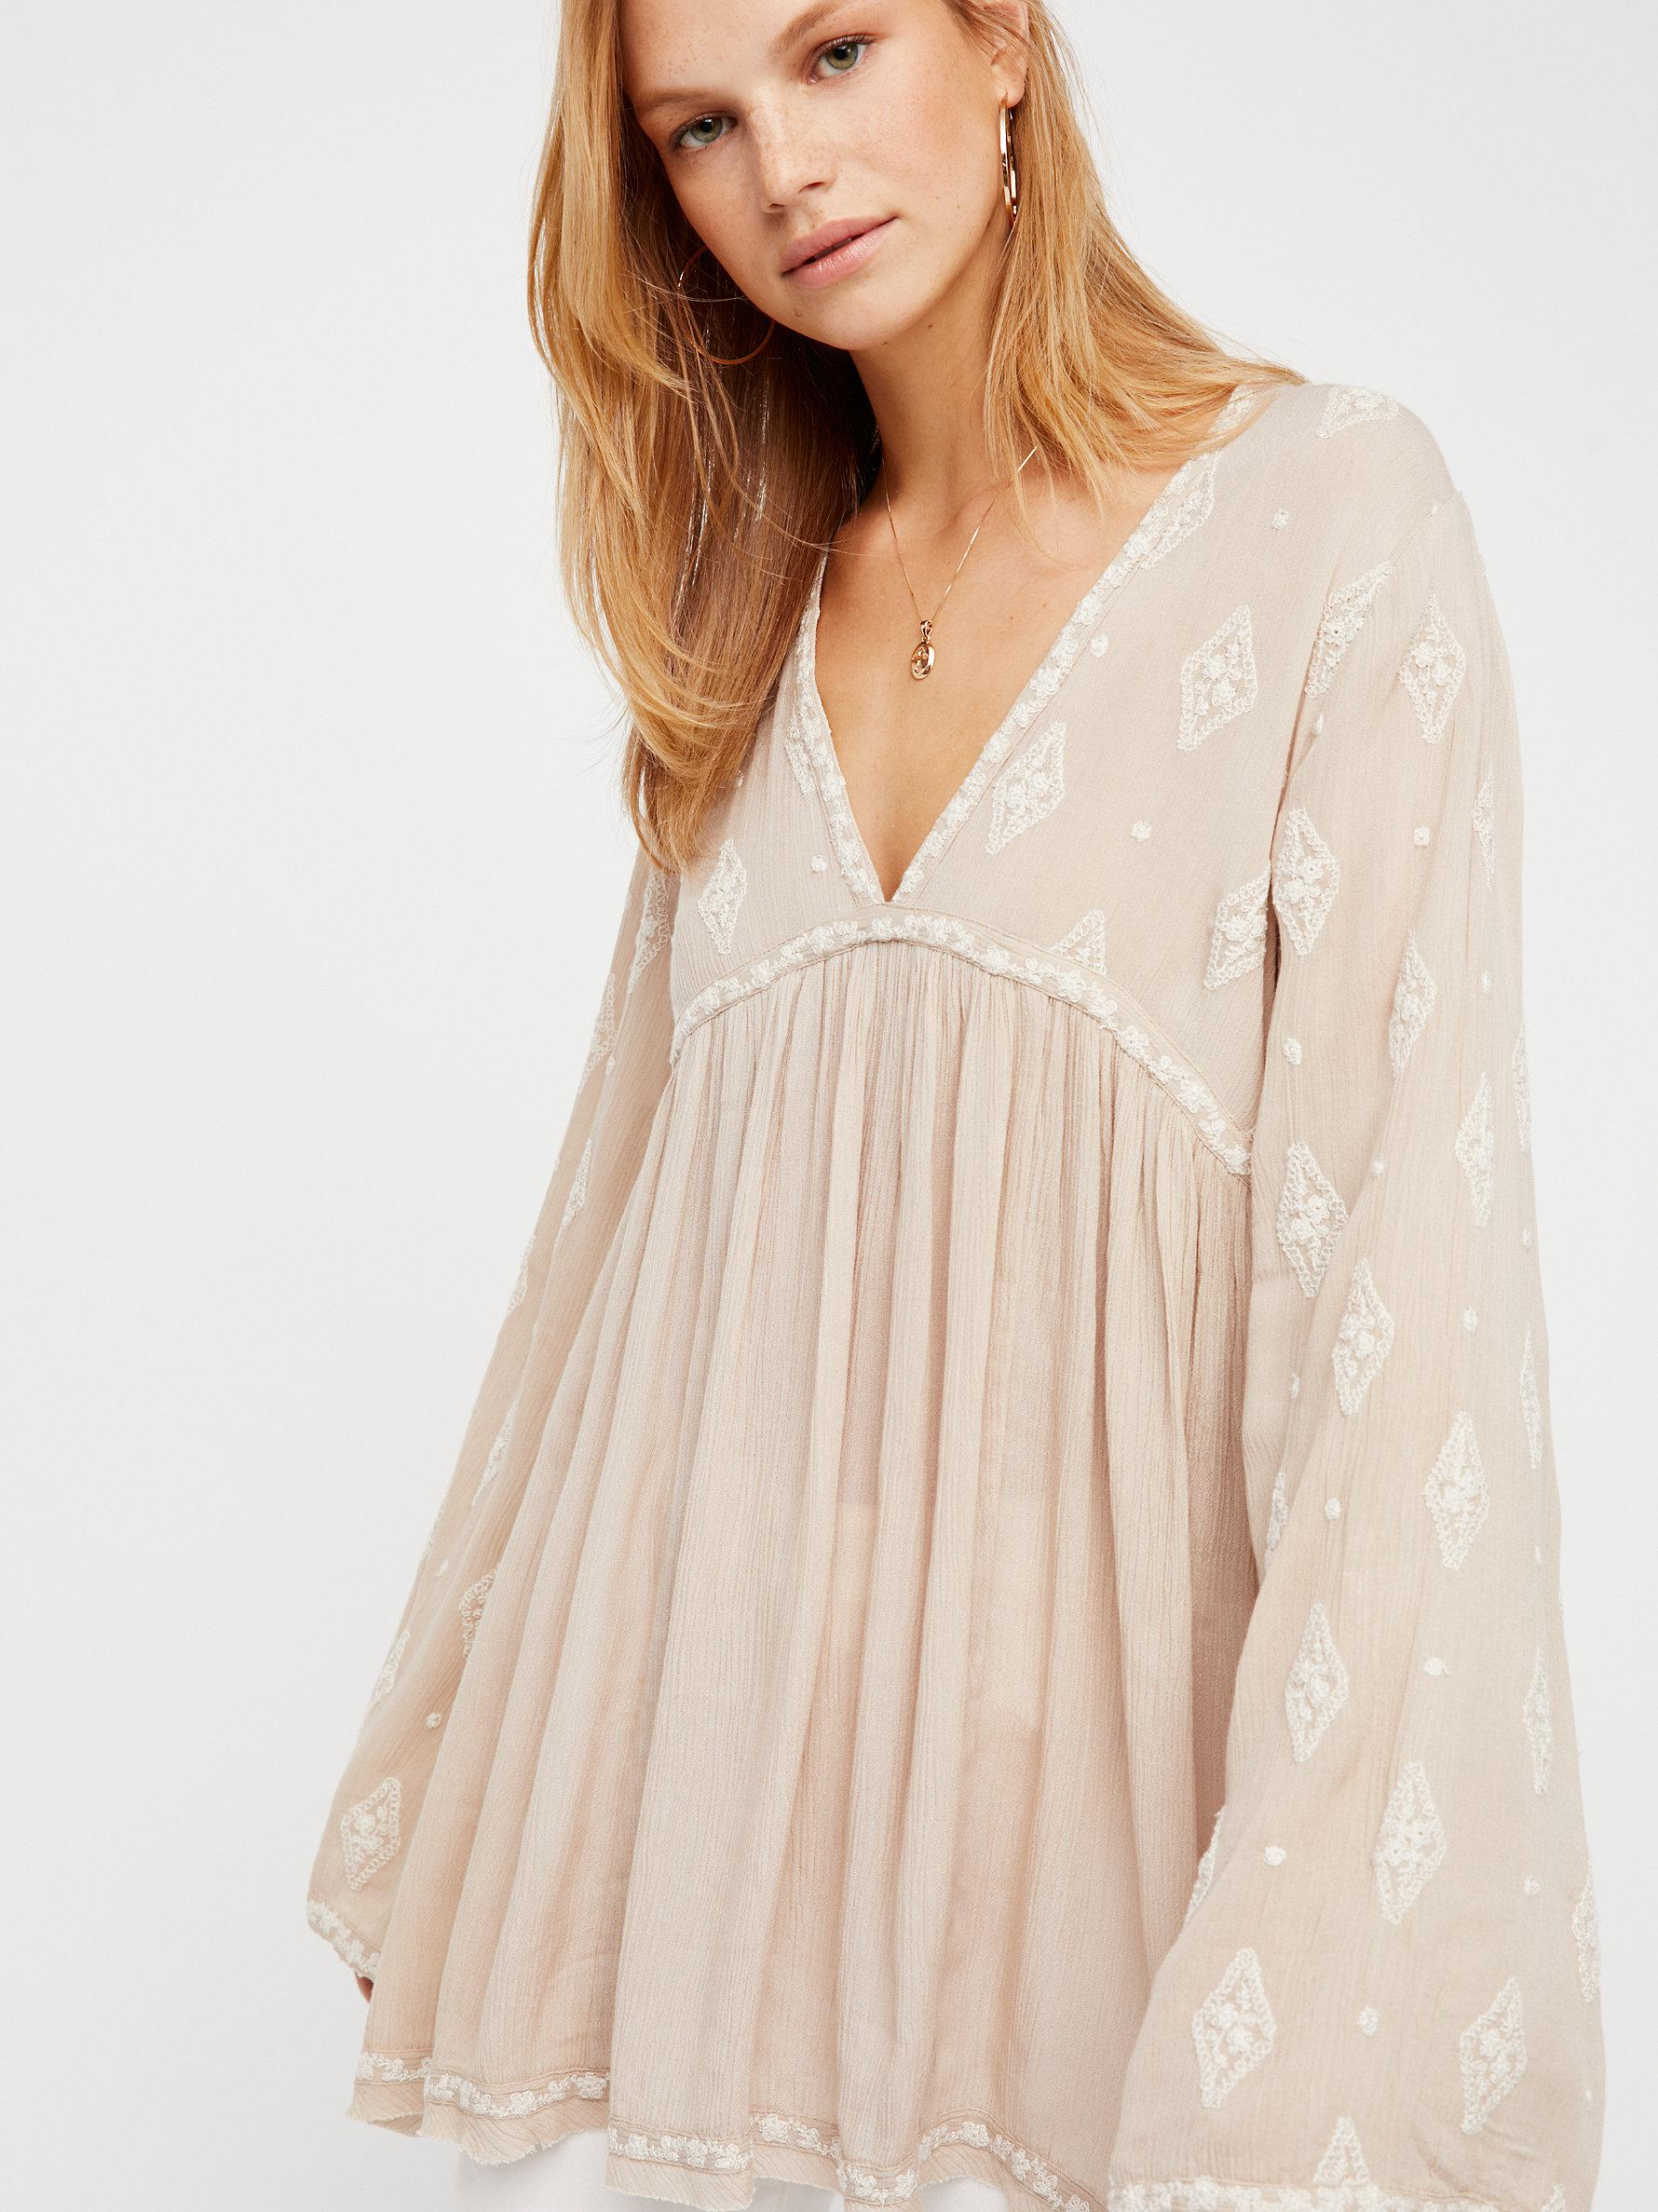 ef6febe504646 Free People Diamond Embroidered Top in Natural - Lyst